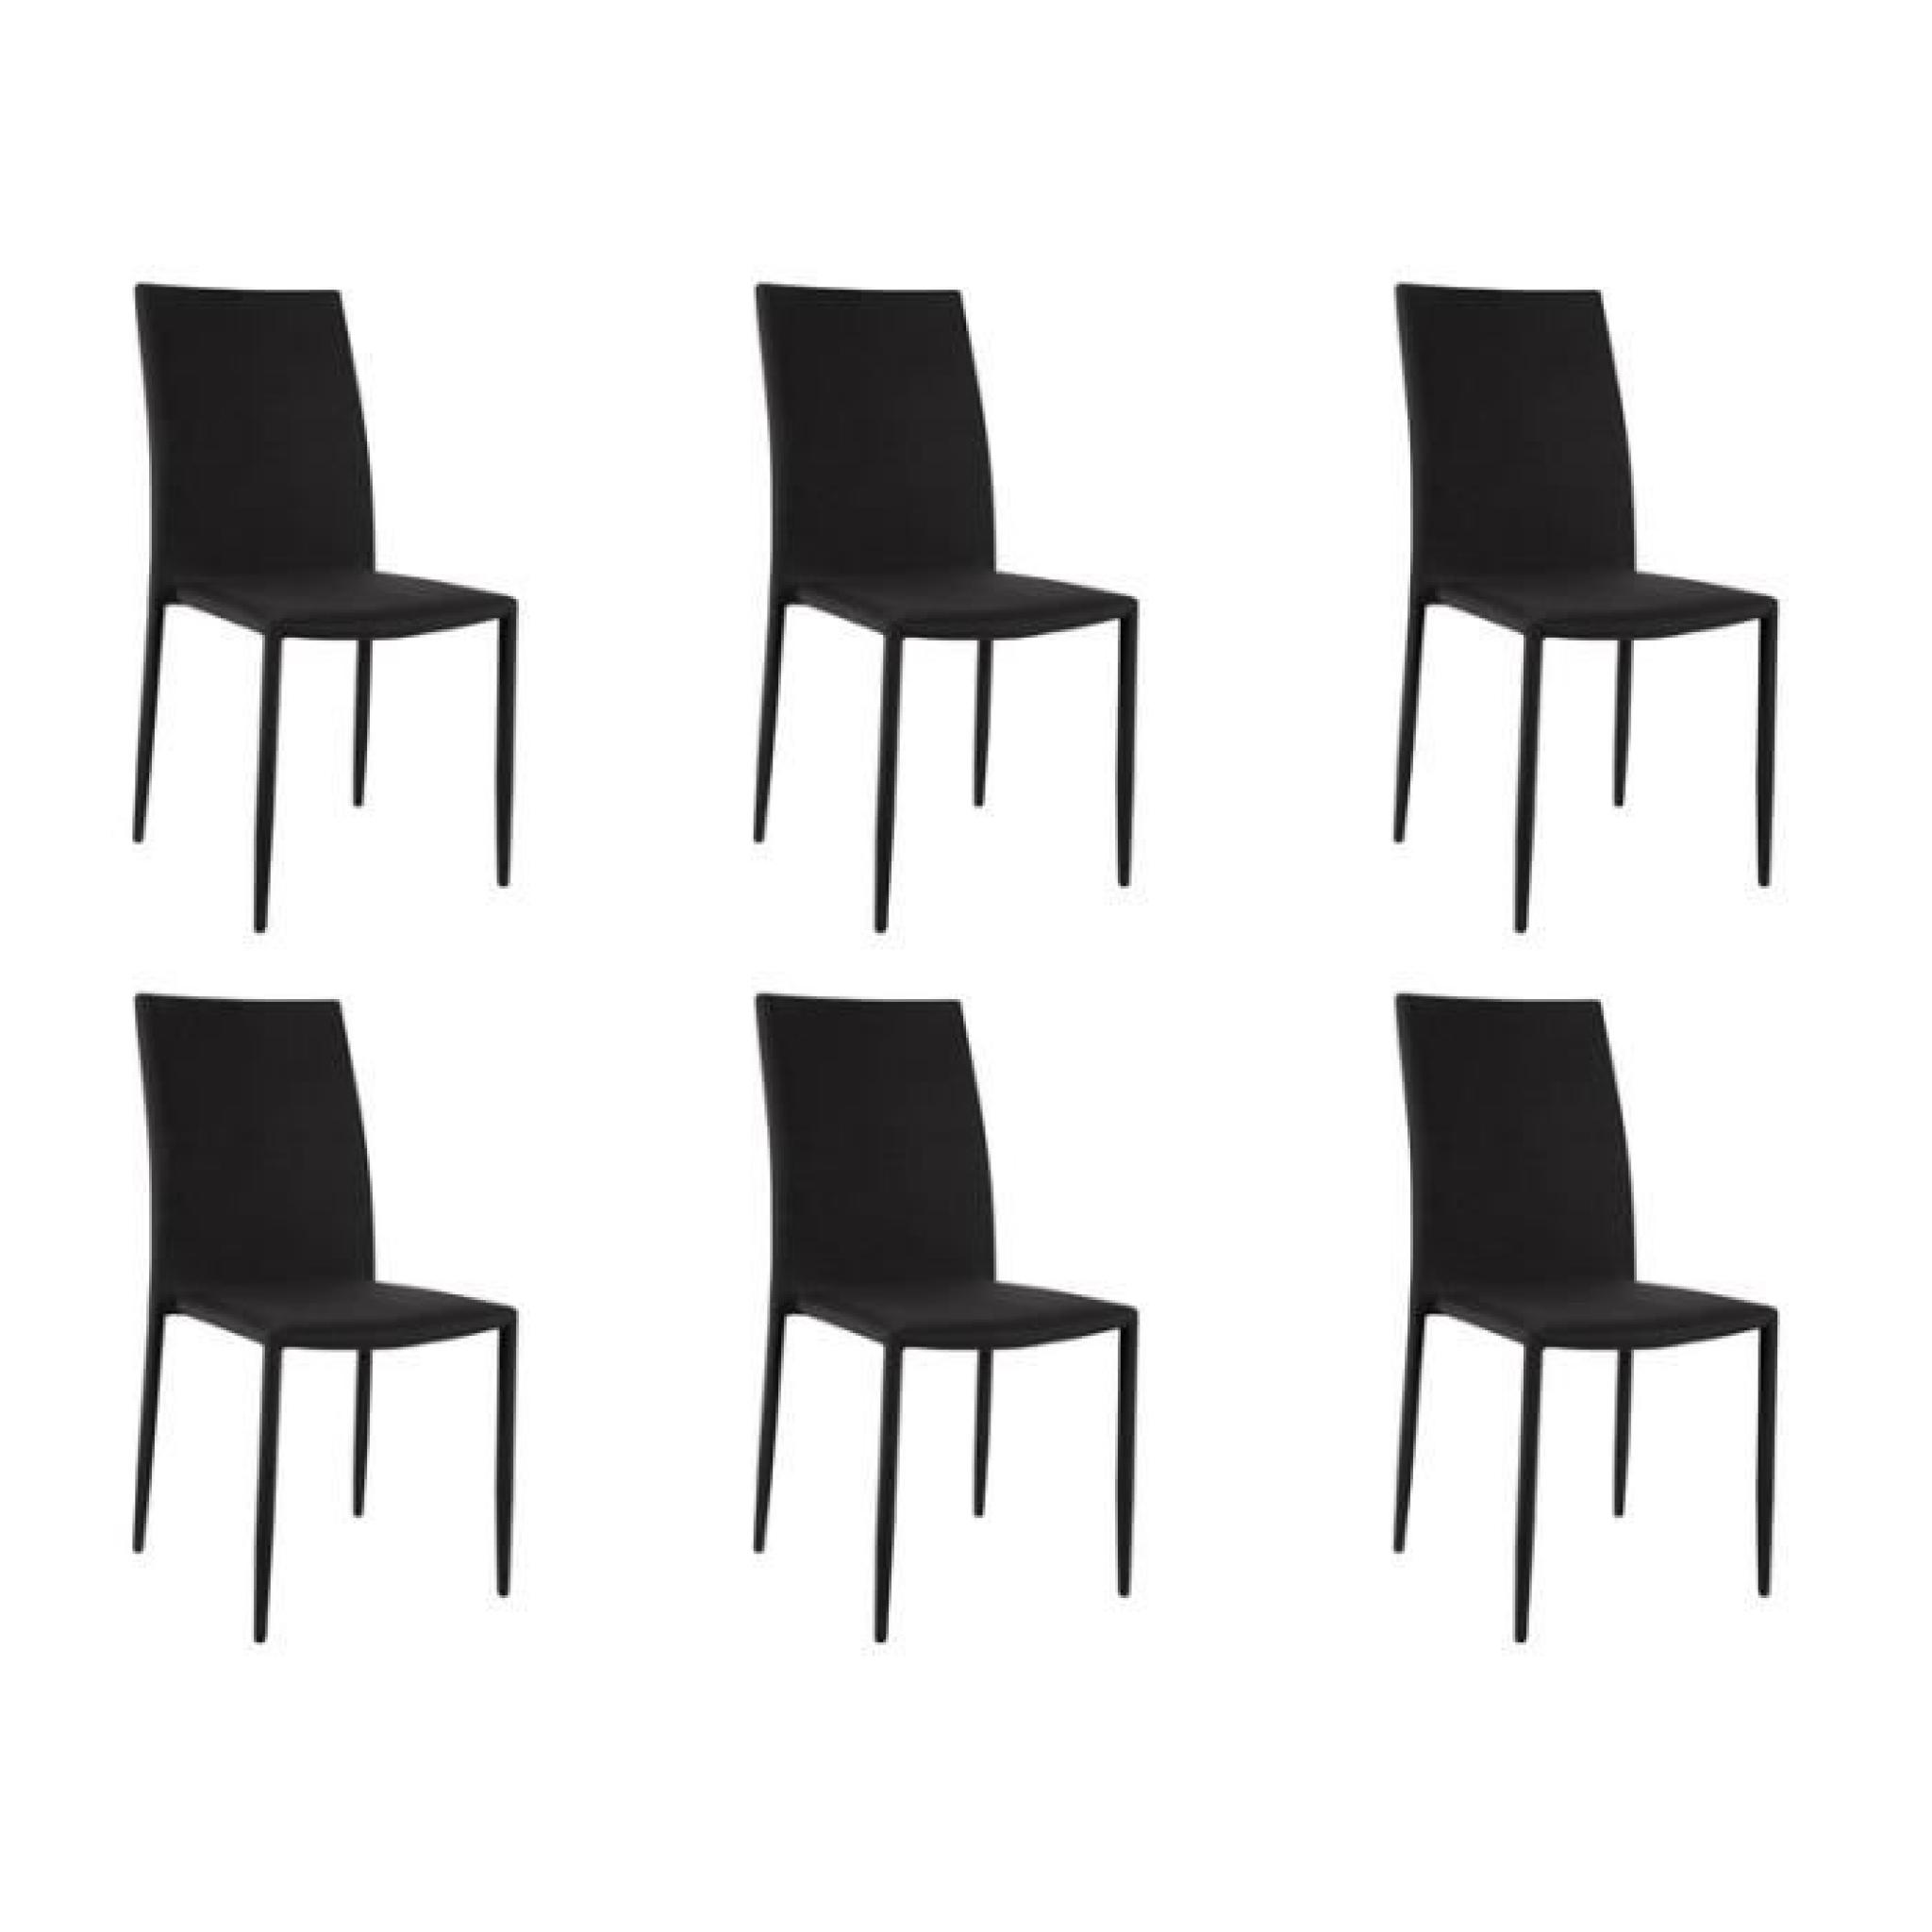 loola lot 6 chaises noires achat vente chaise salle a. Black Bedroom Furniture Sets. Home Design Ideas